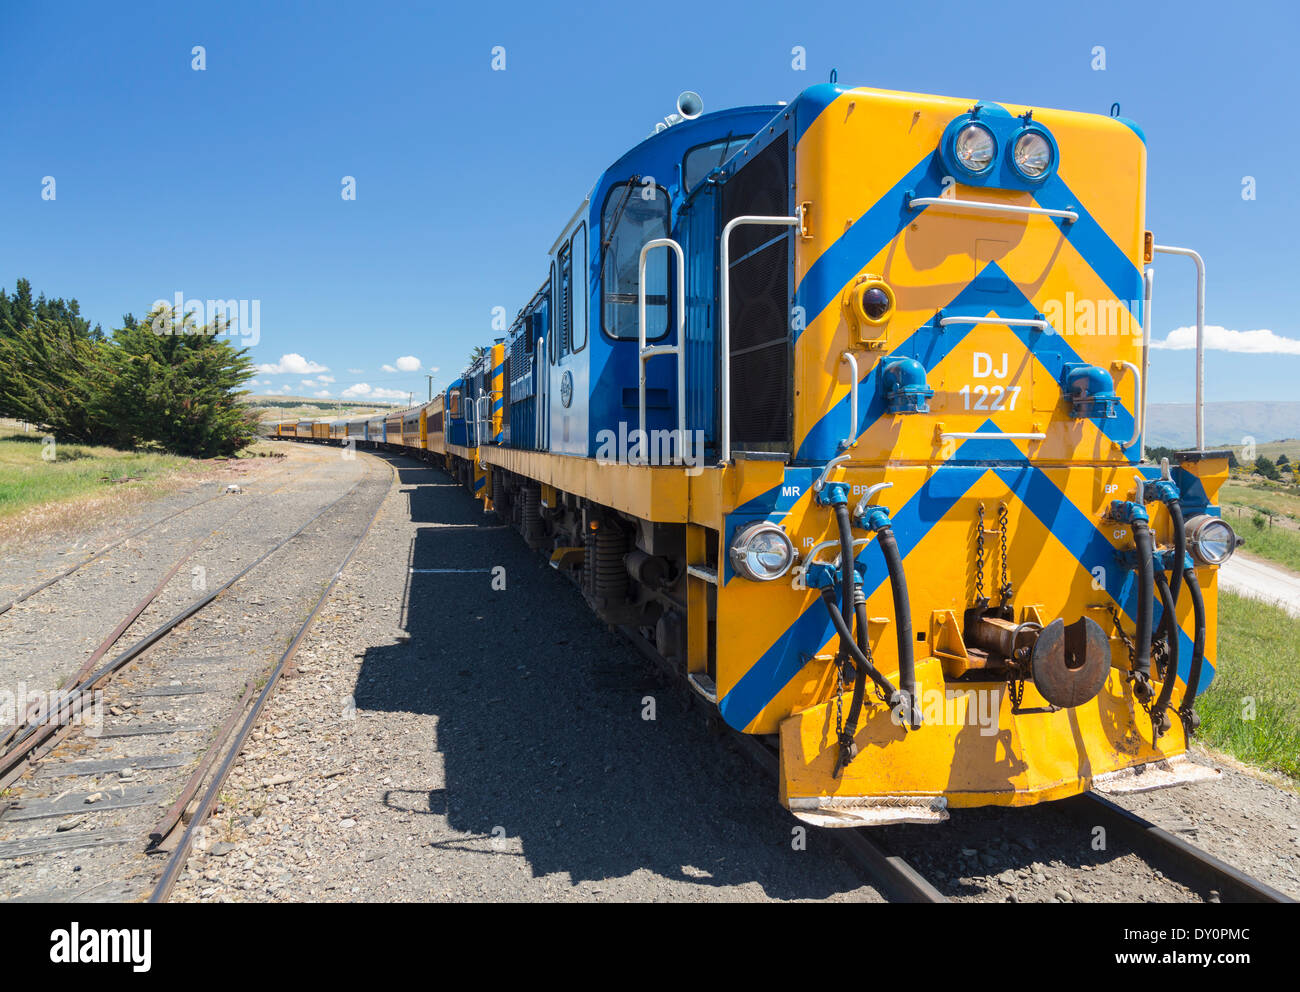 Taieri Gorge railway train, New Zealand - a diesel electric DJ class locomotive - Stock Image